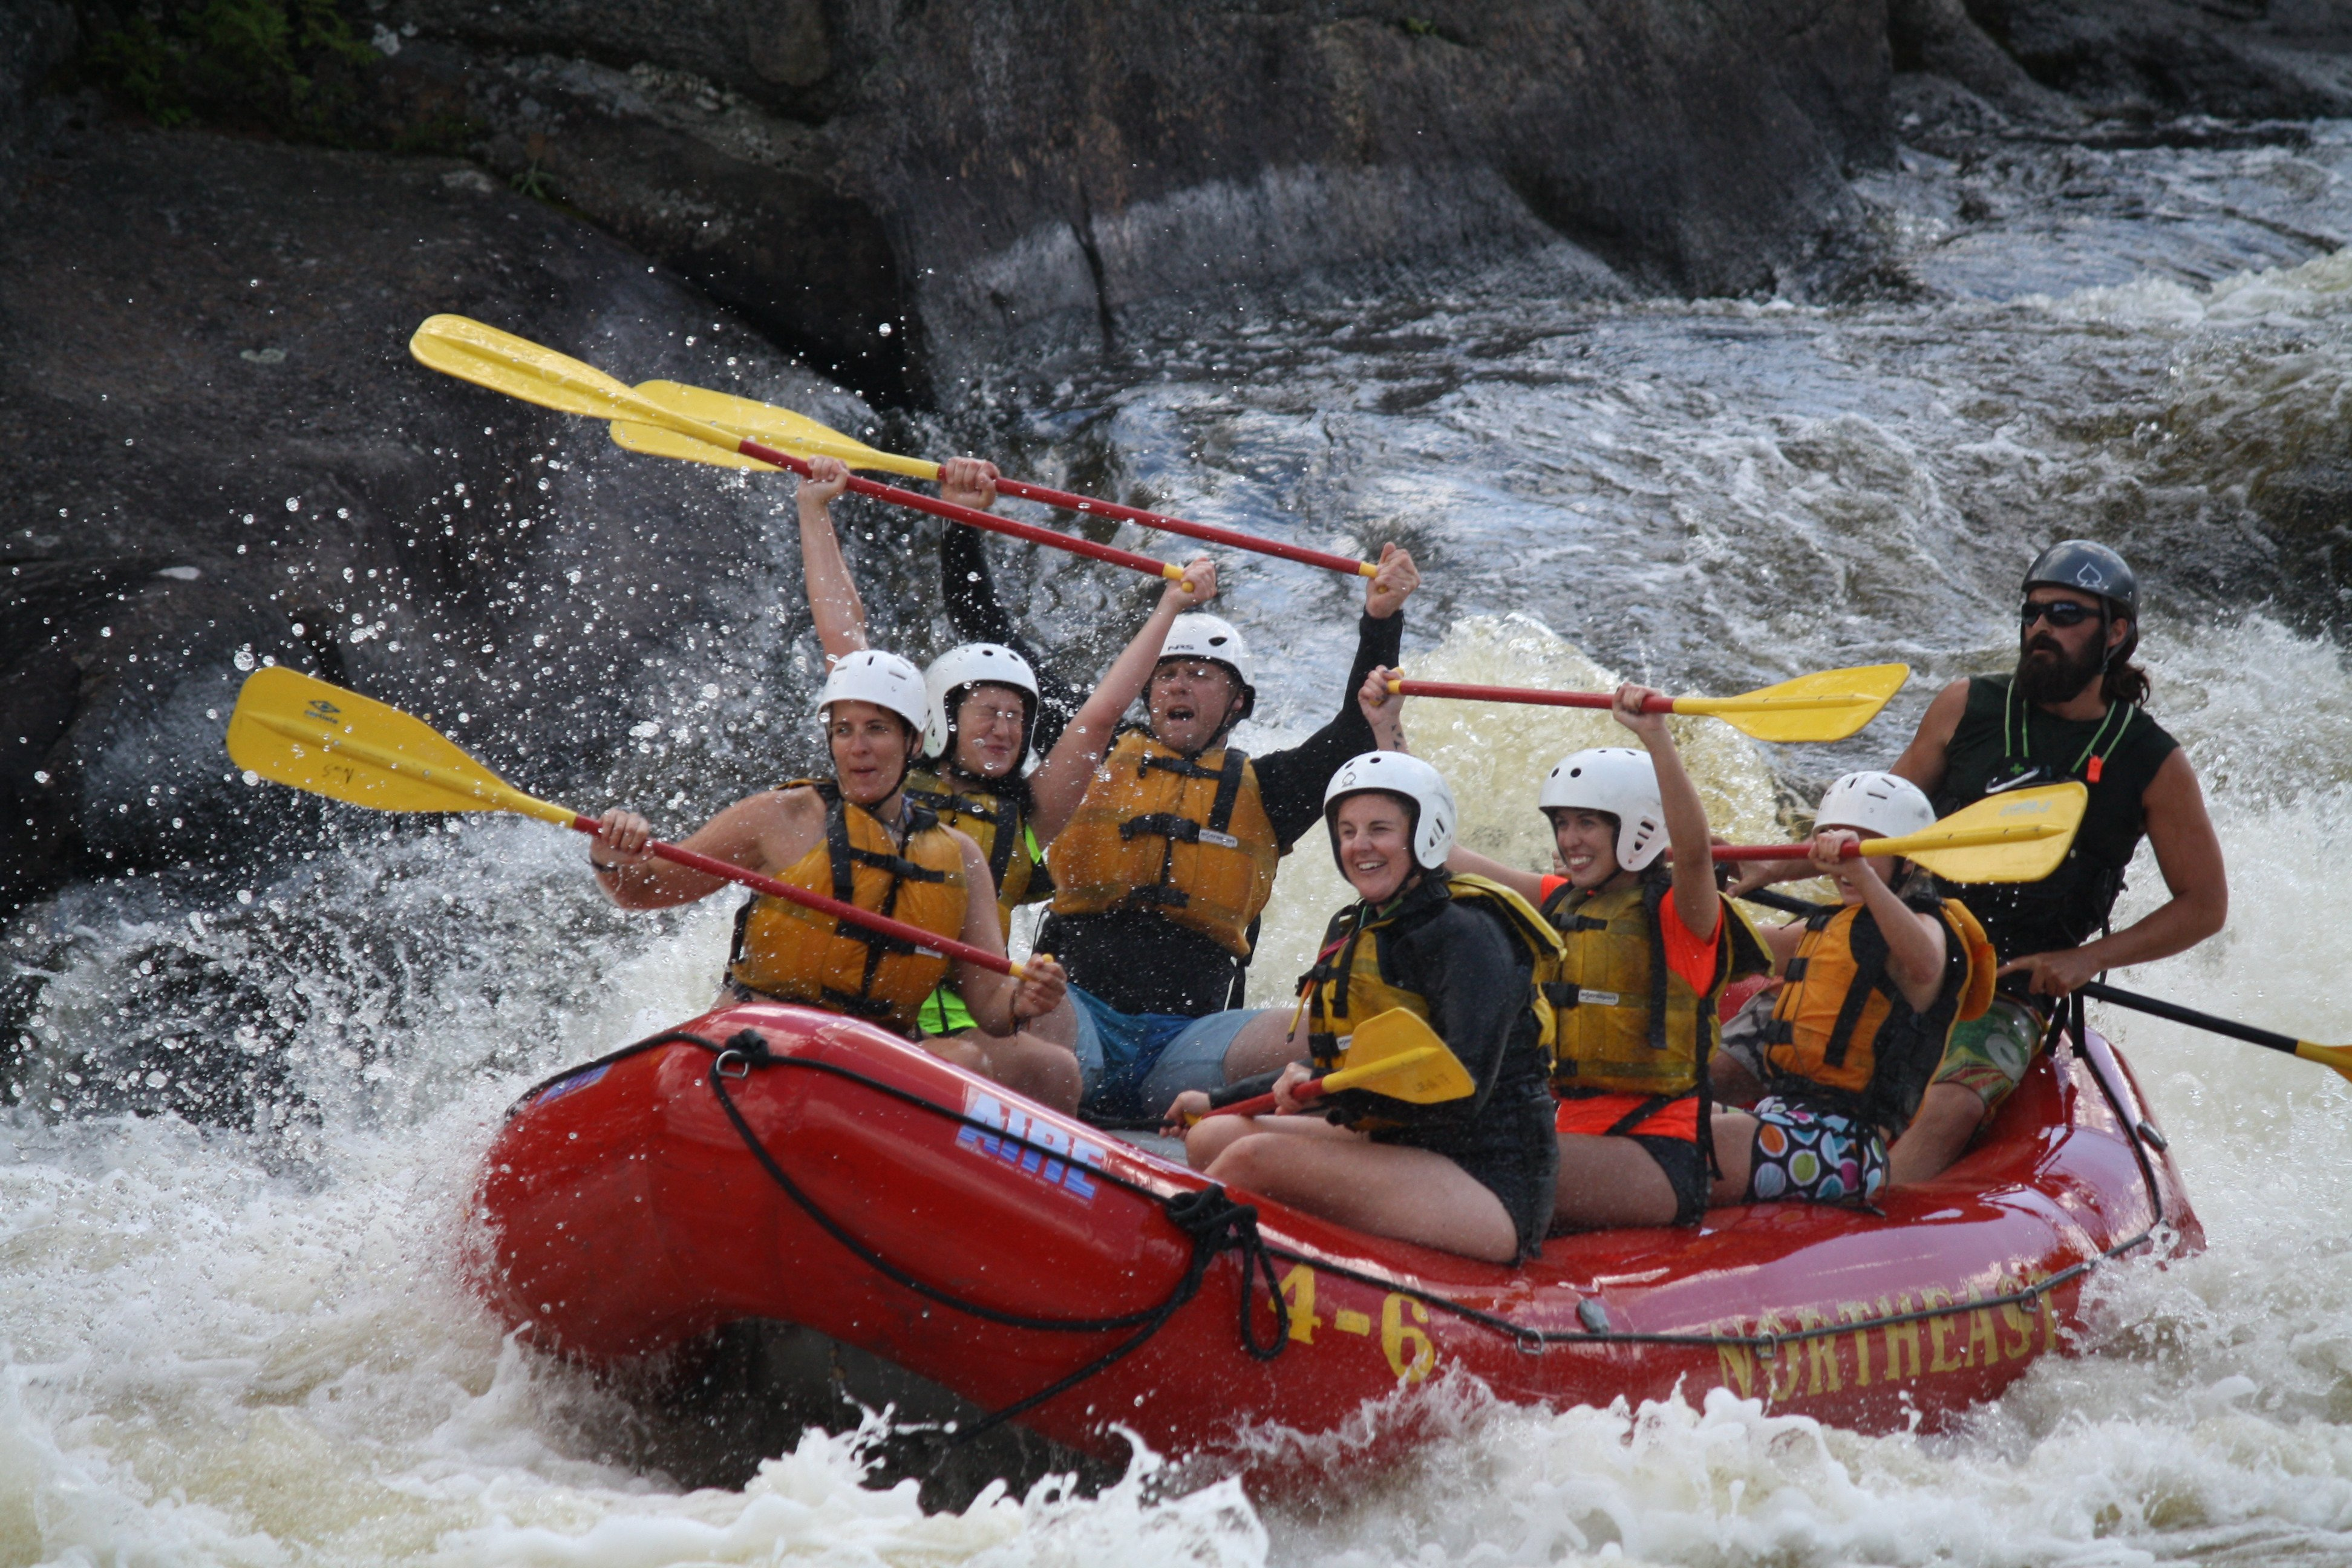 Whitewater Rafting on Maine's Penobscot River